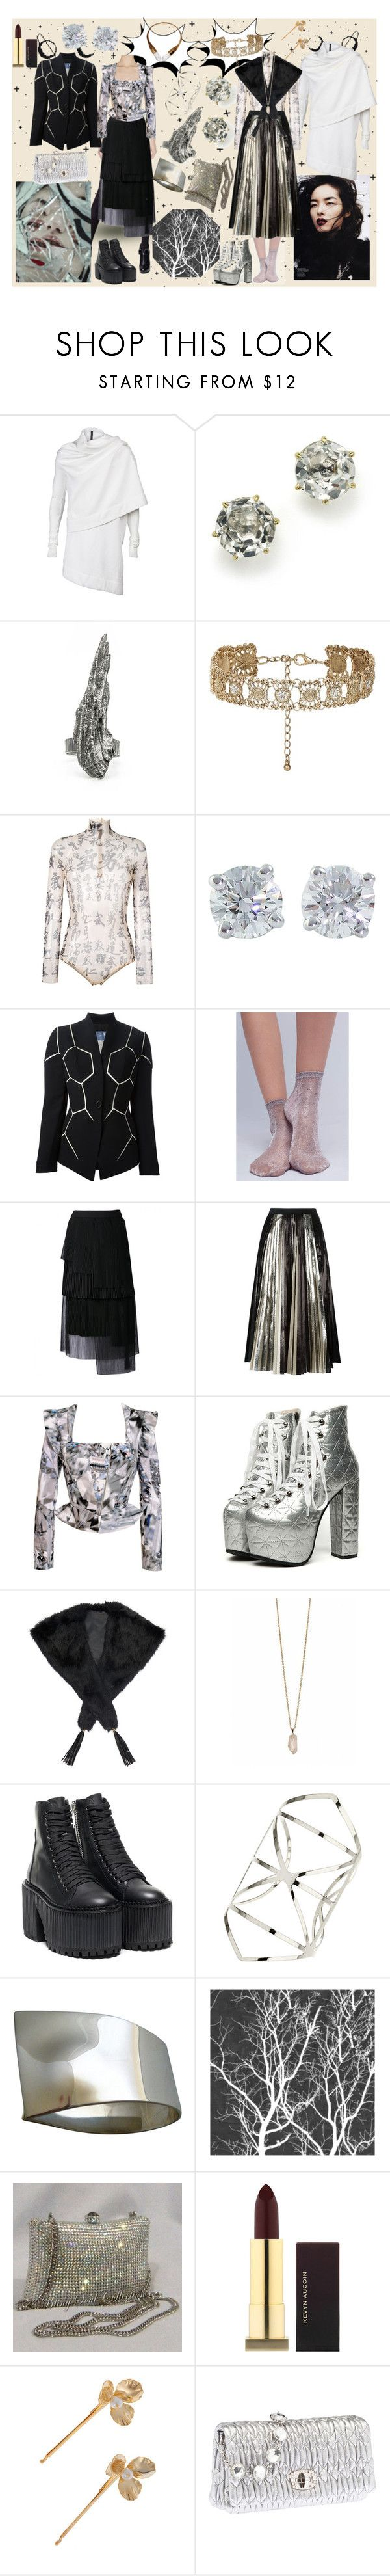 """dripping in crystals"" by ju-on ❤ liked on Polyvore featuring DRKSHDW, Ippolita, Alicia Hannah Naomi, New Look, Dsquared2, Tiffany & Co., Thierry Mugler, Hansel from Basel, Manish Arora and Proenza Schouler"